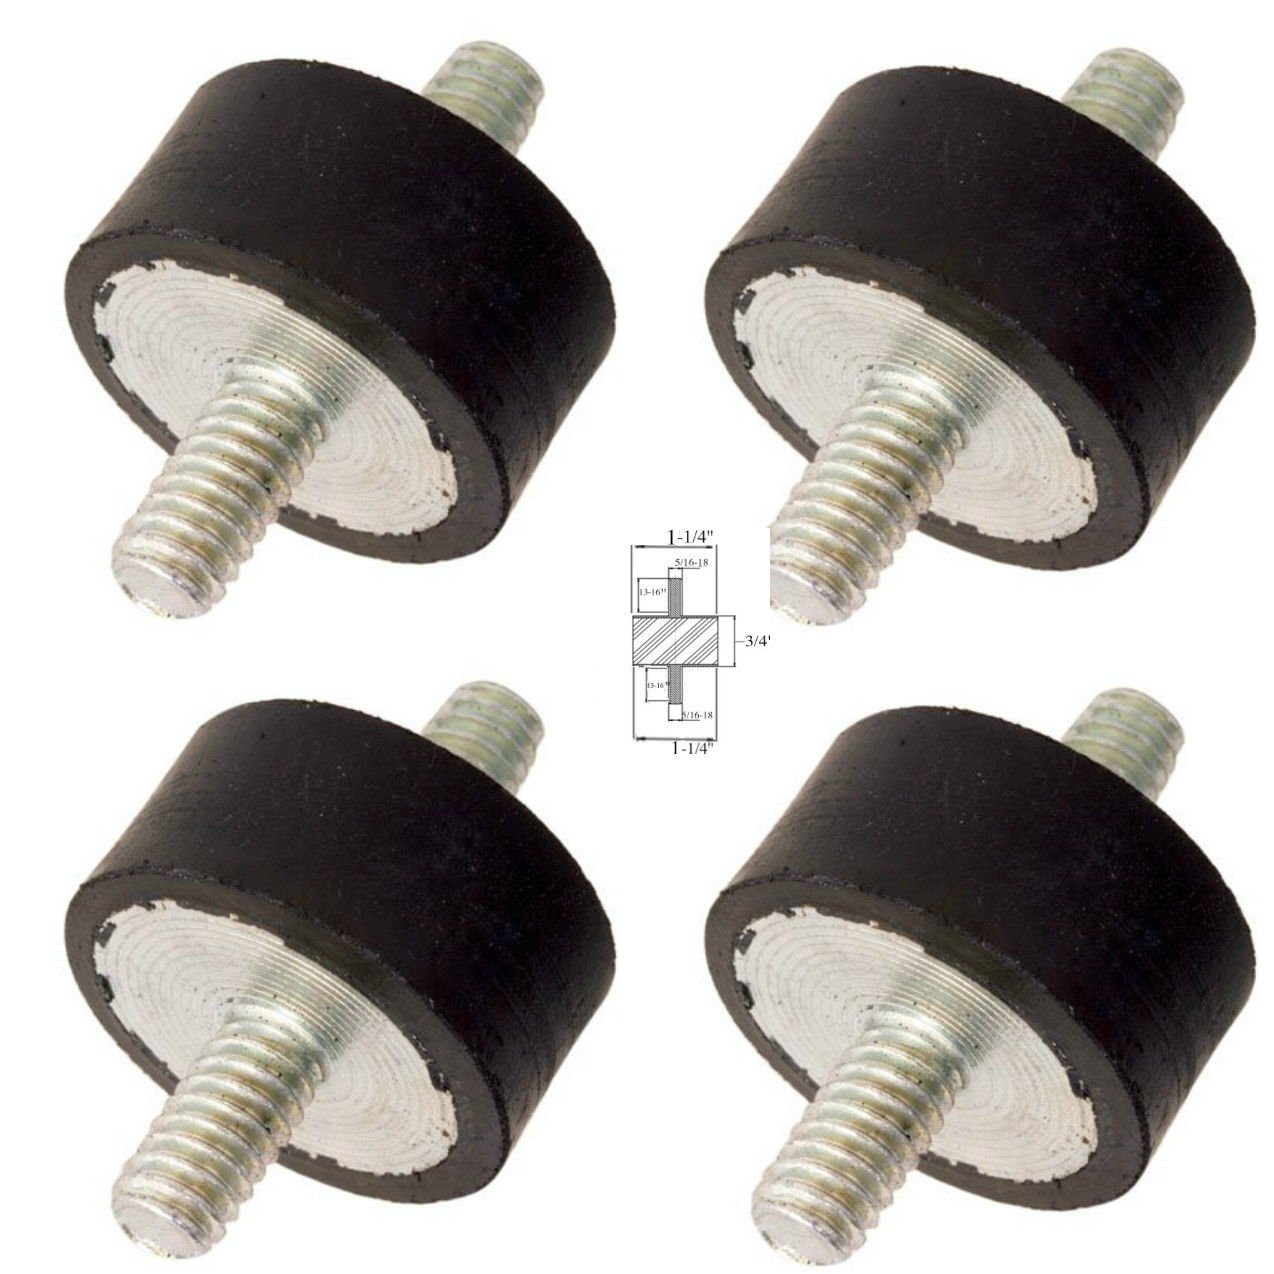 "Lot of (4) Rubber Anti Vibration Isolator Mounts Rubber Height 3/4"" x 1-1/4"" Rubber Diameter - Studs 5/16-18 x 13/16"" Length"